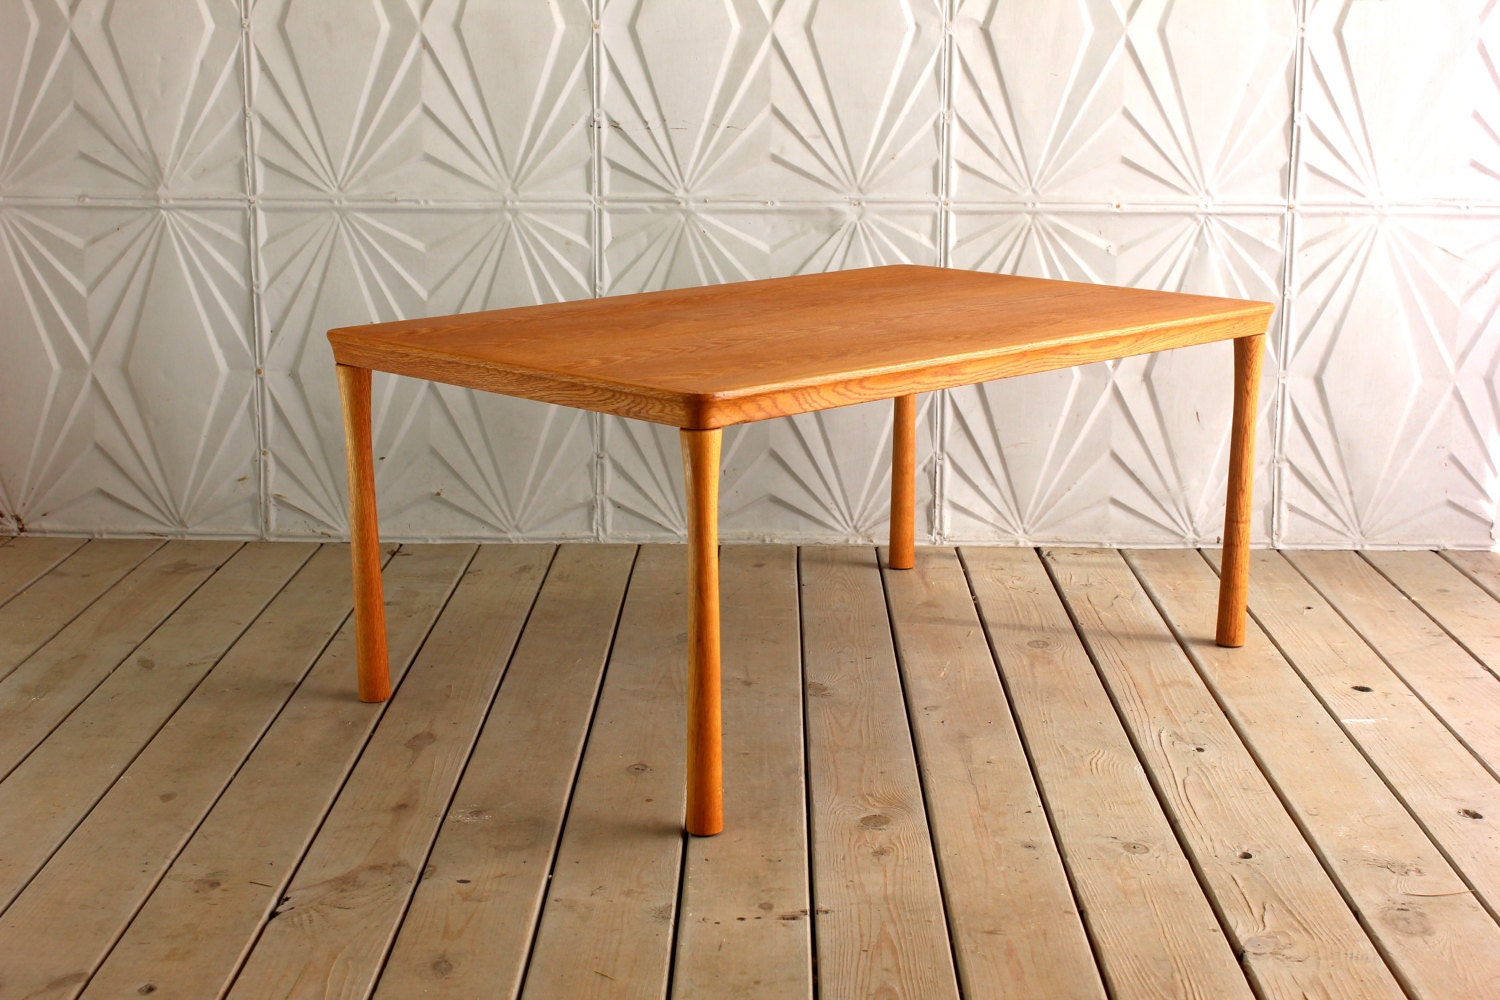 Folke ohlsson colorado large oak coffee table tingstroms bra details very cool rare oak coffee table geotapseo Image collections